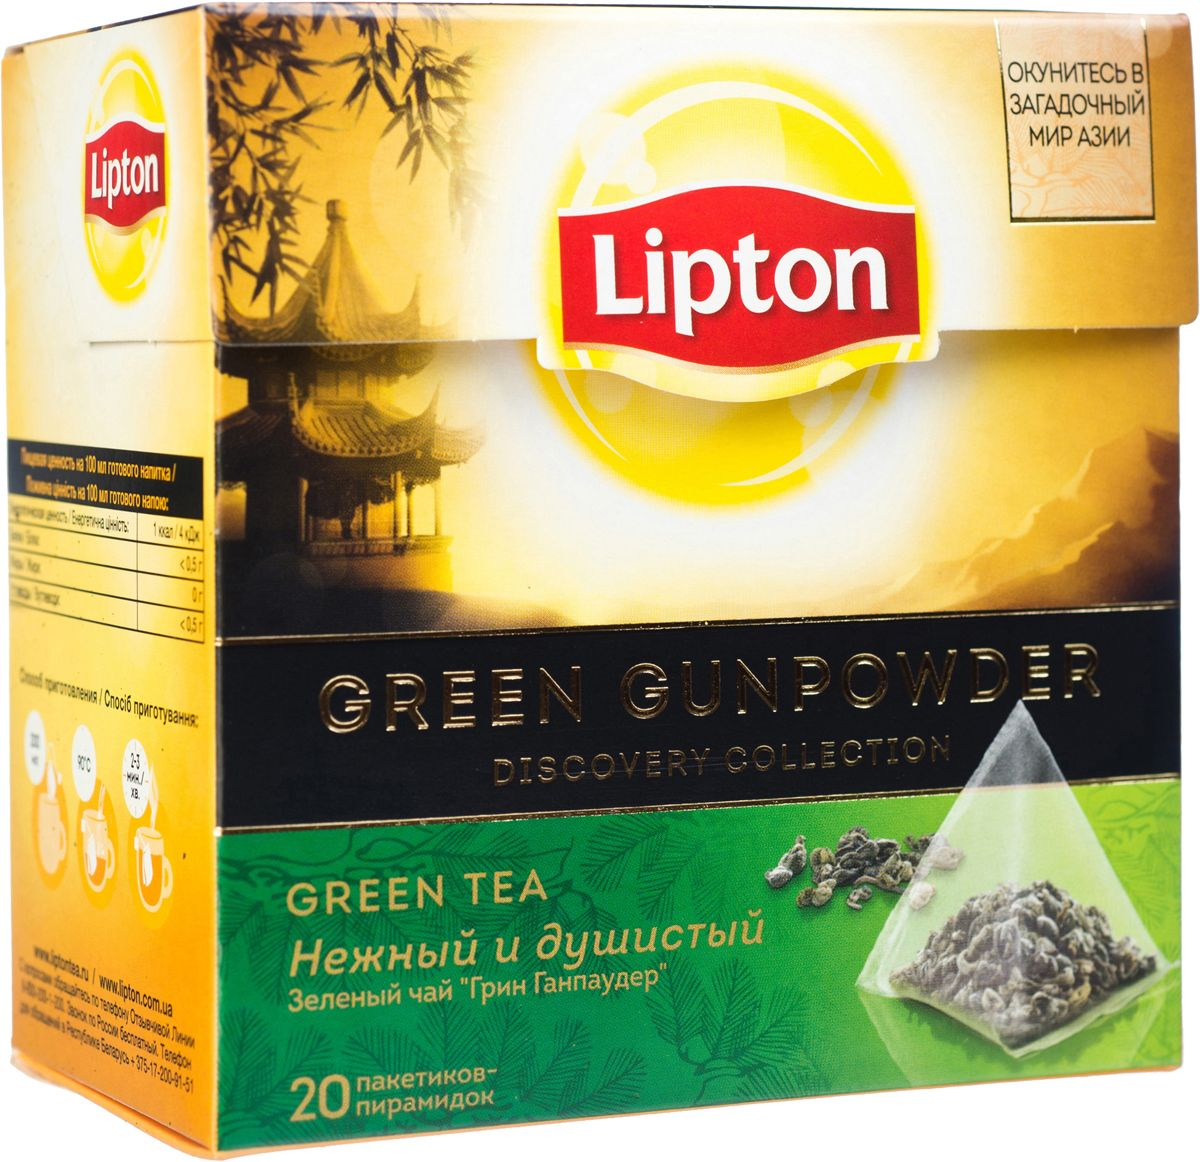 Lipton Зеленый чай Green gunpowder 20 шт65415065/17245703/1724570